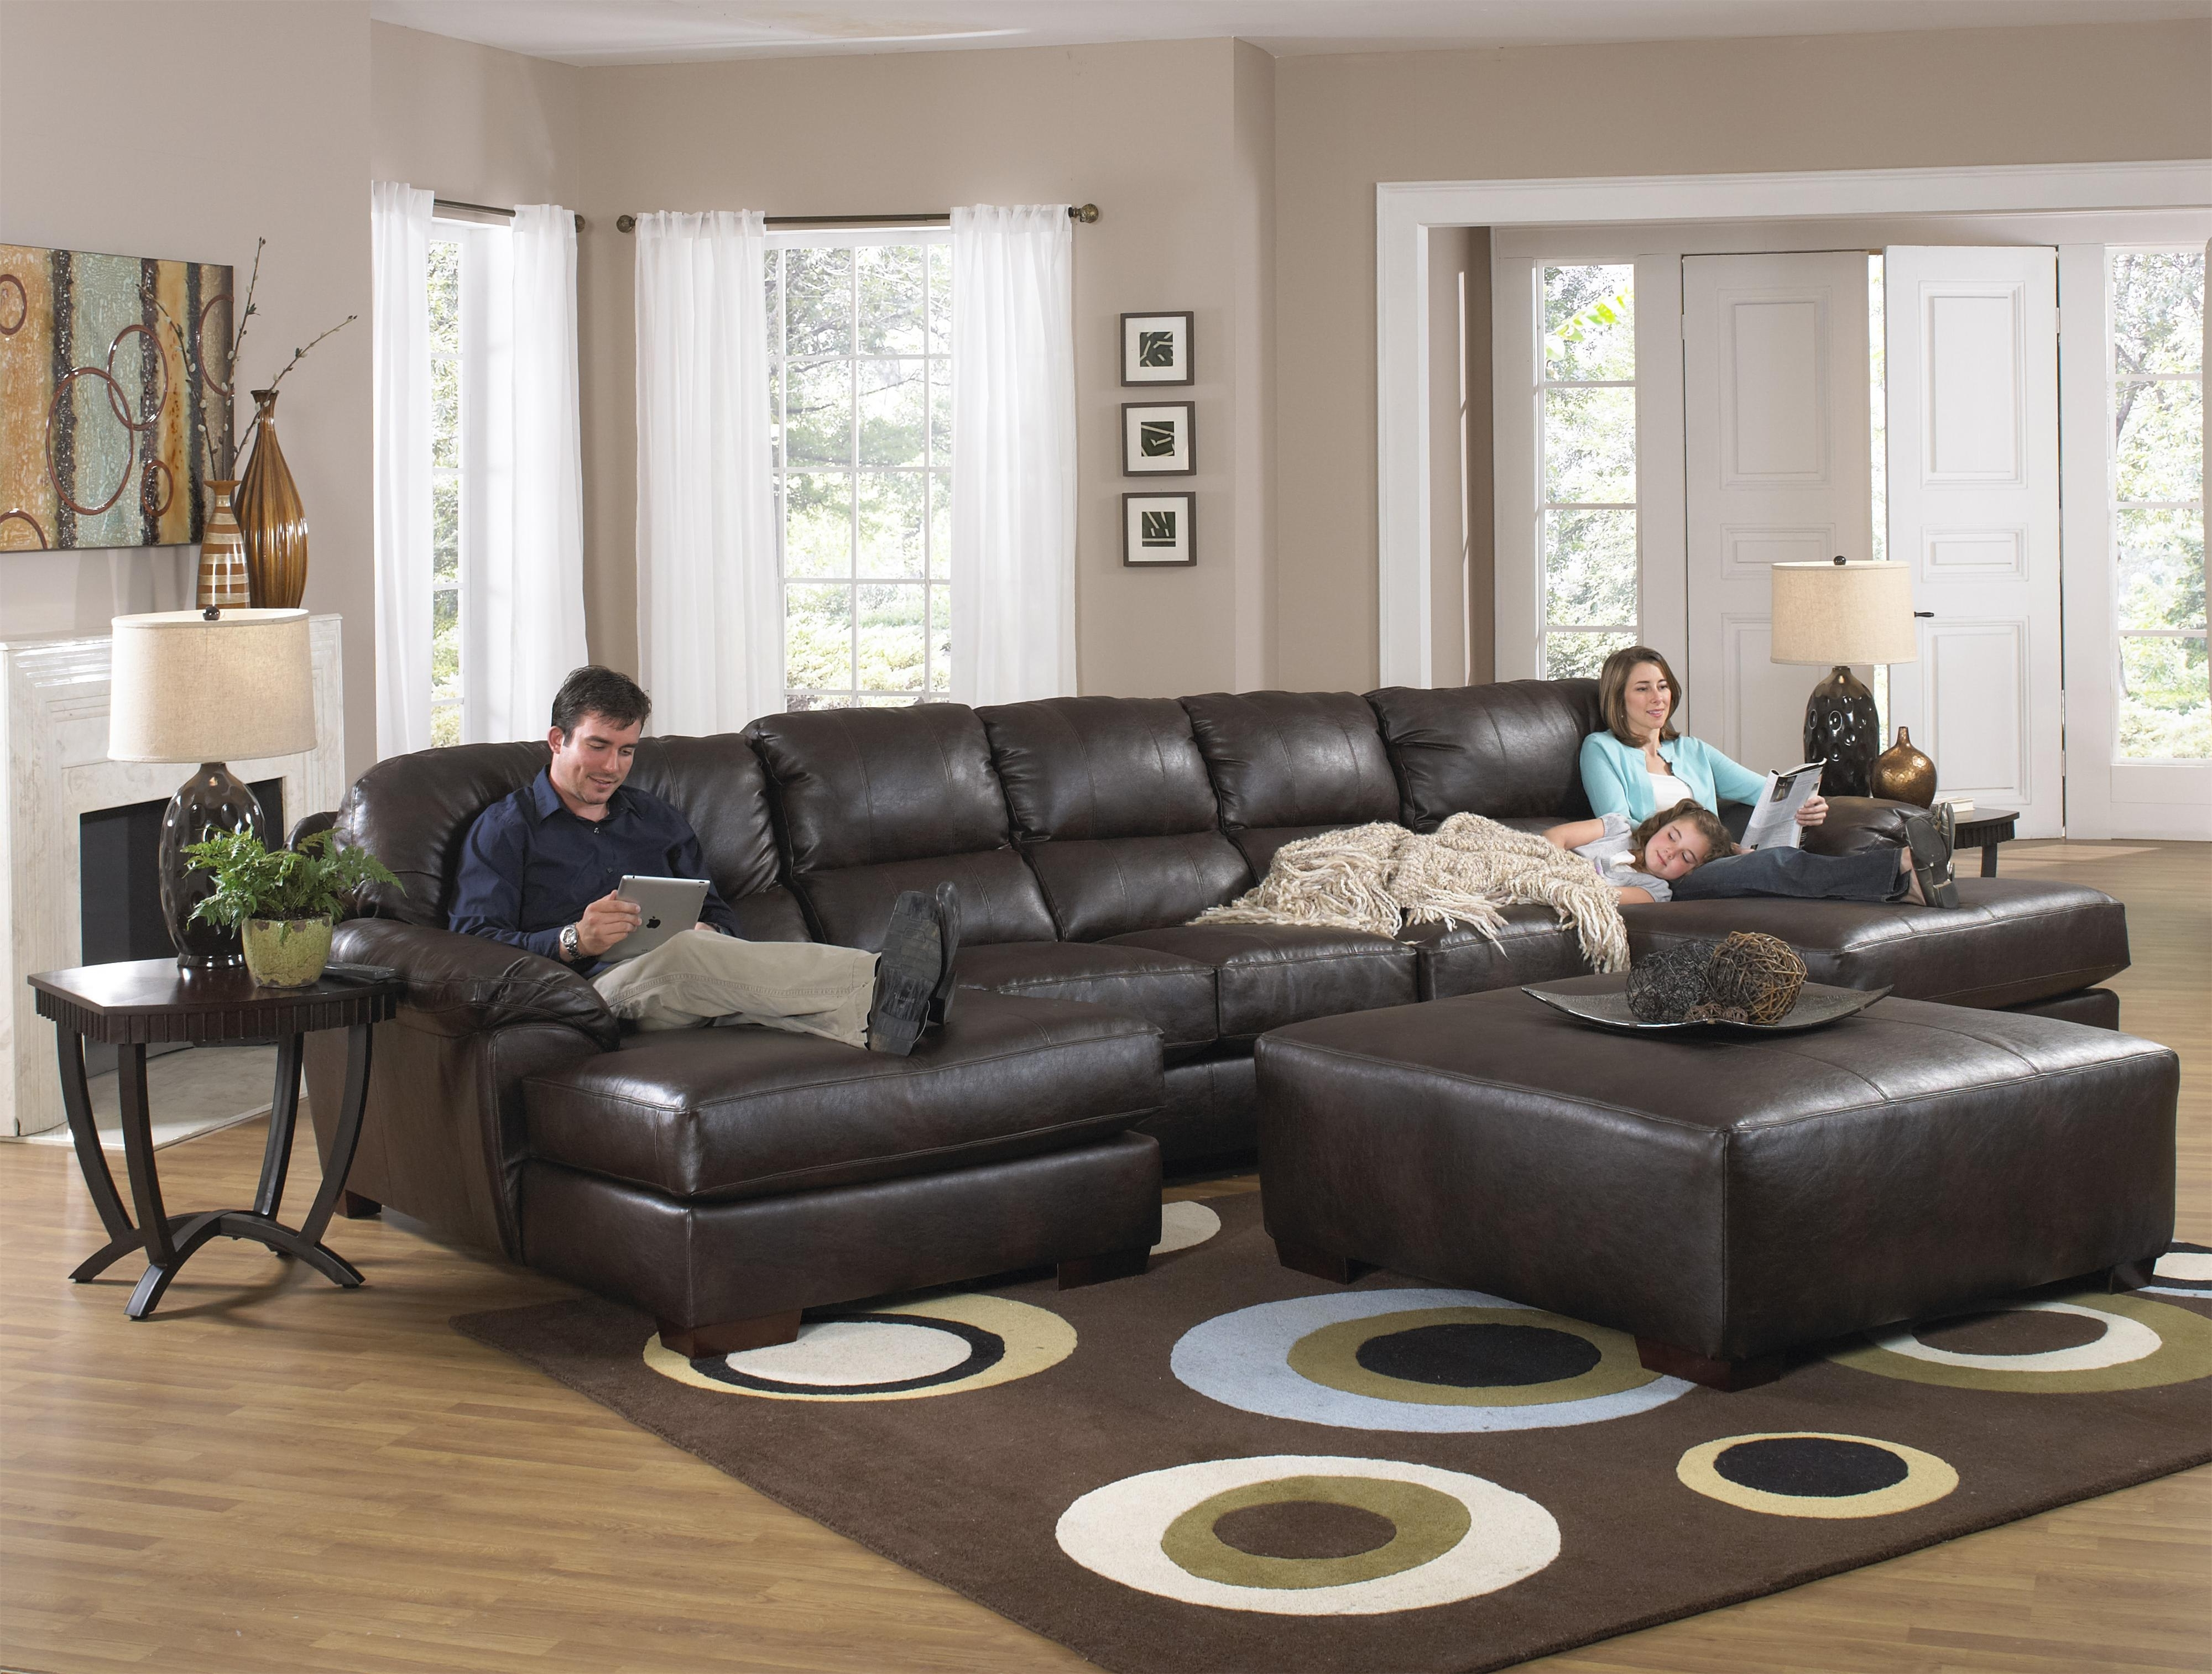 Widely Used Sectional Sofas With Chaise Lounge Regarding Two Chaise Sectional Sofa With Five Total Seatsjackson (View 14 of 15)